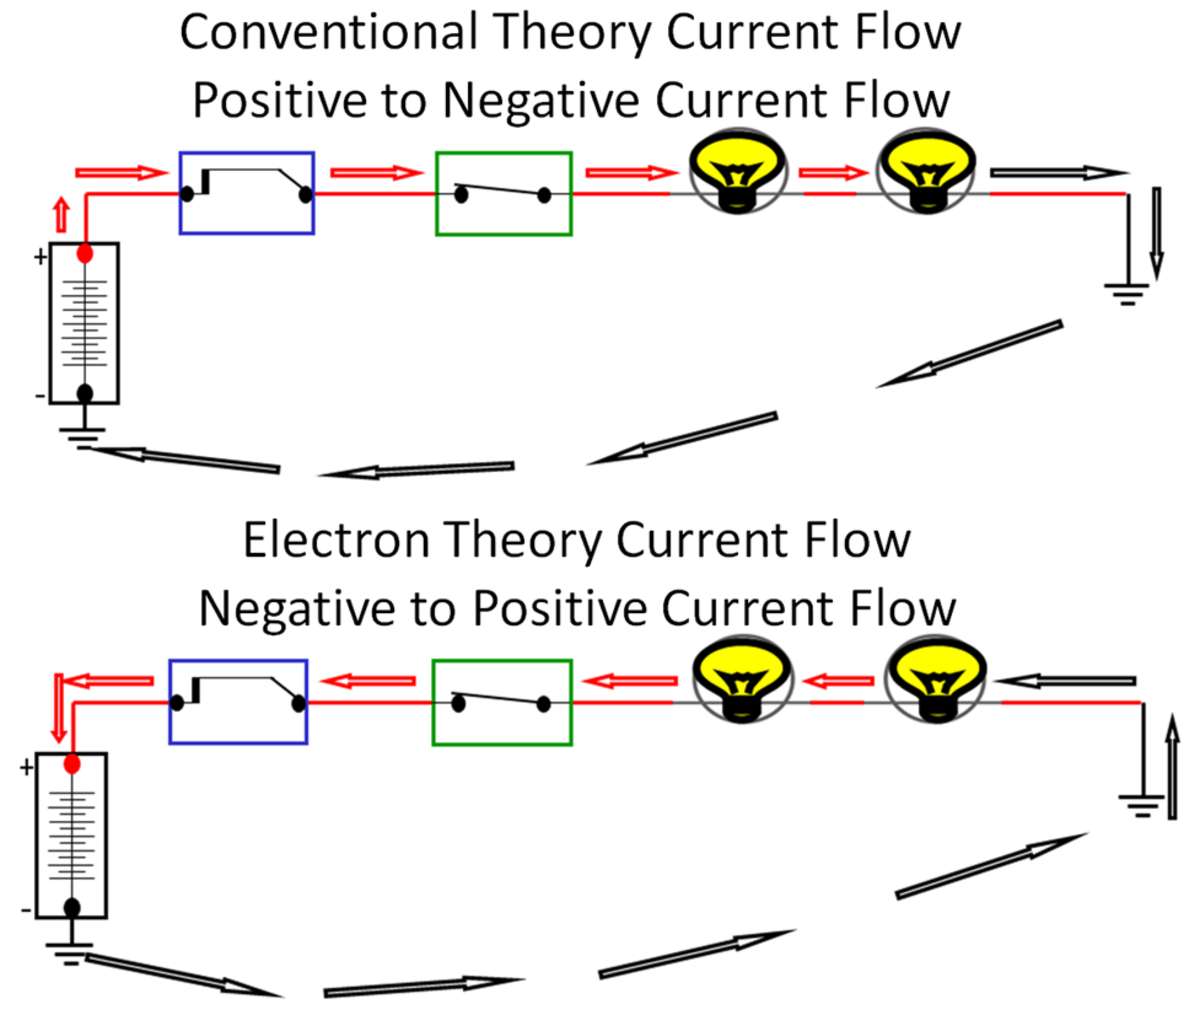 Conventional Theory positive to negative flow and Electron Theory negative to positive flow.